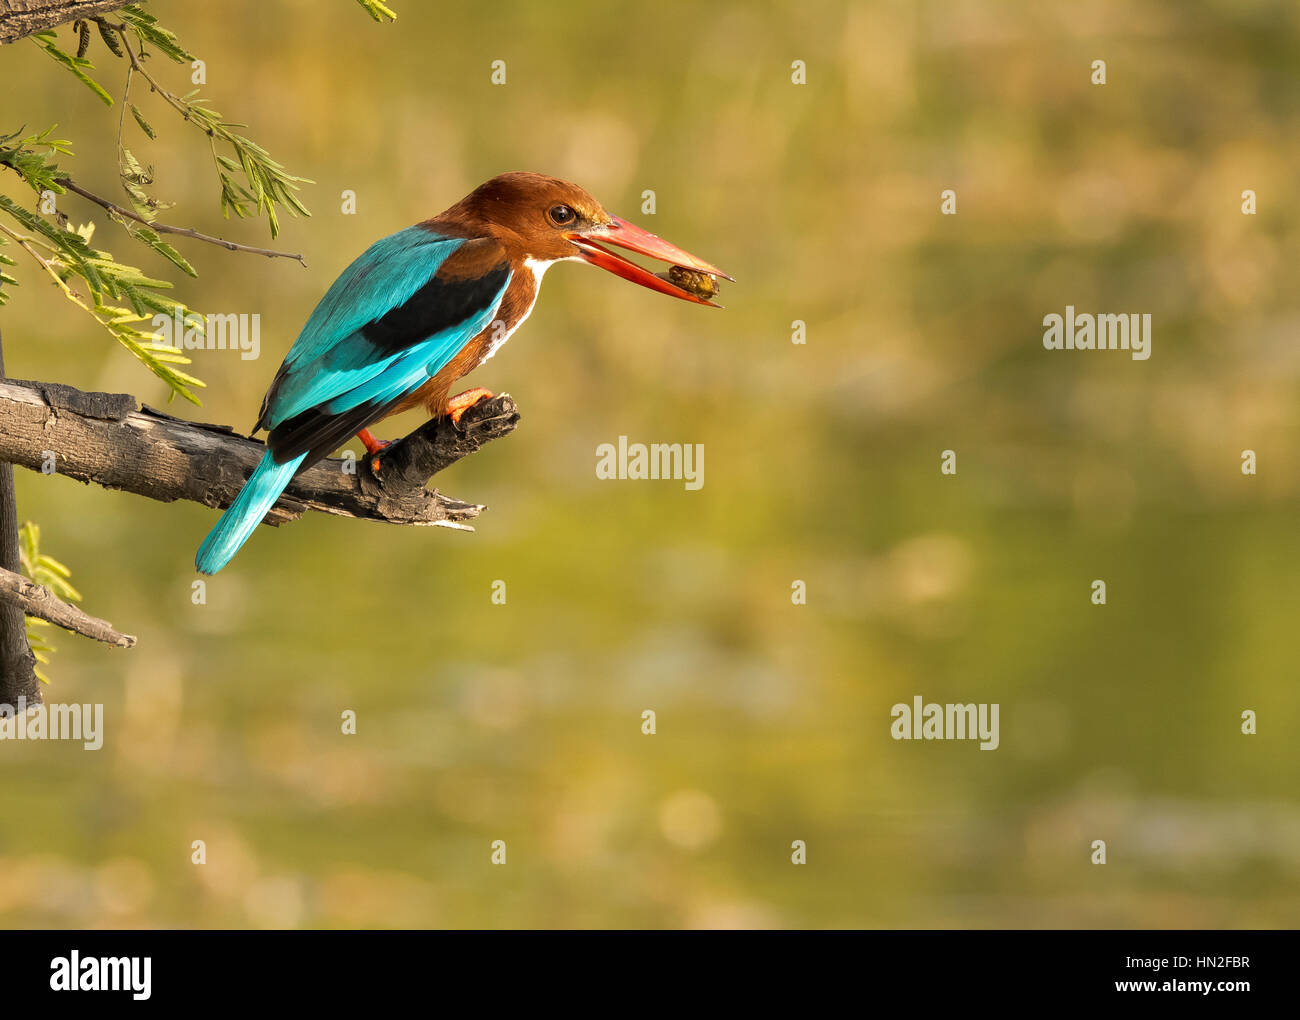 King-fisher with a catch - Stock Image